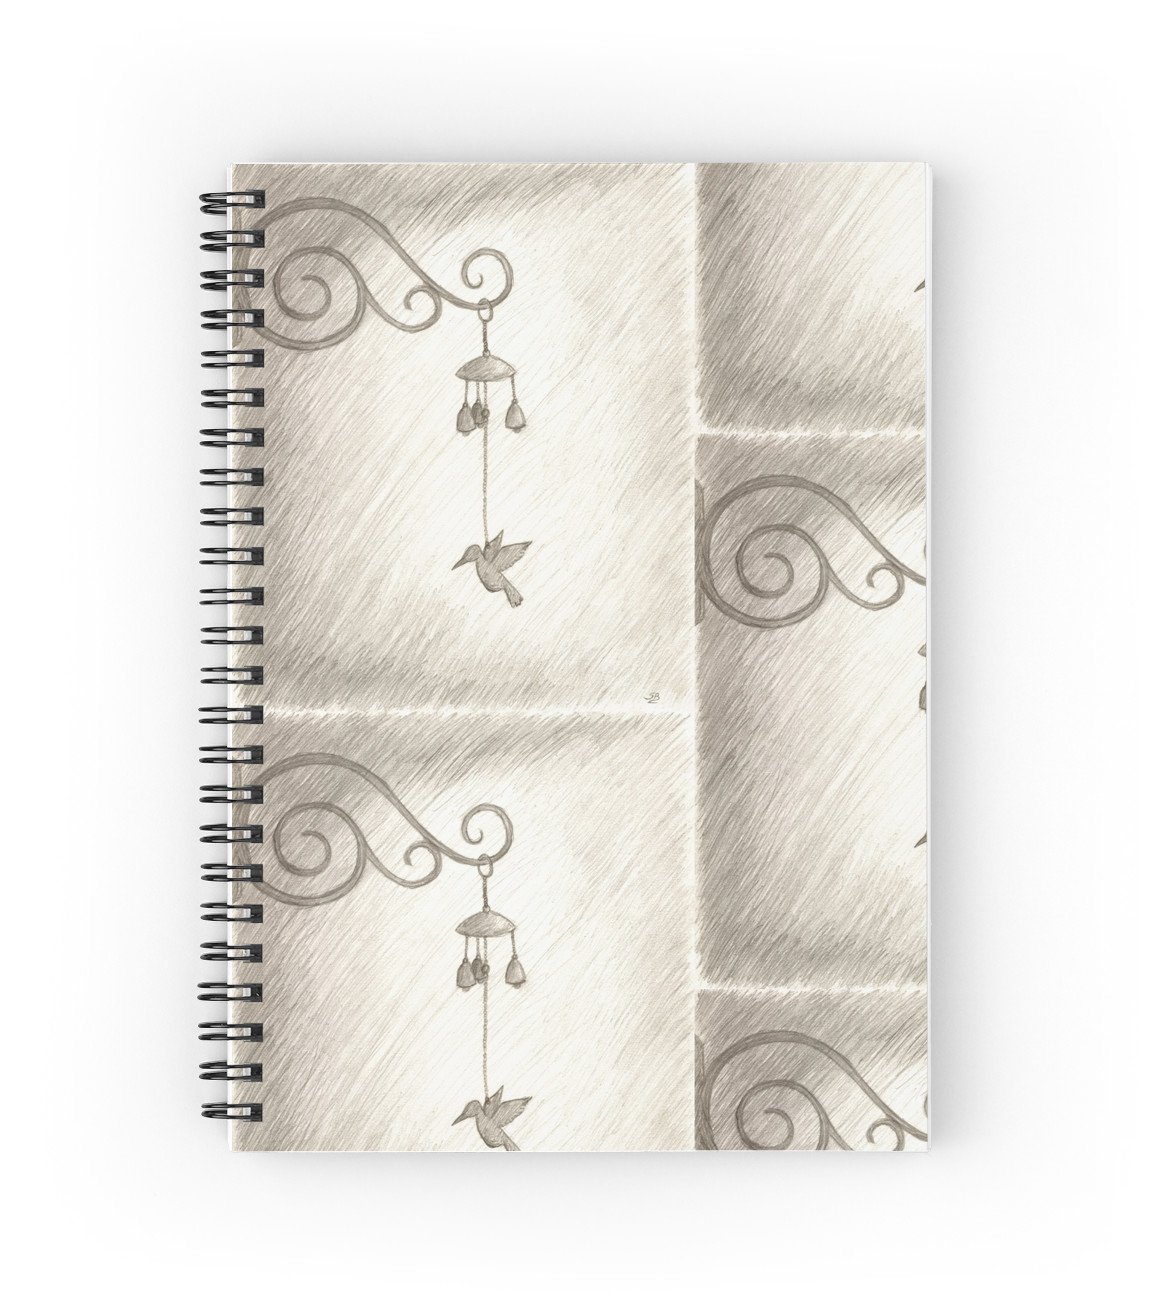 1171x1313 Hummingbird Wind Chime, Pencil Drawing Spiral Notebooks By